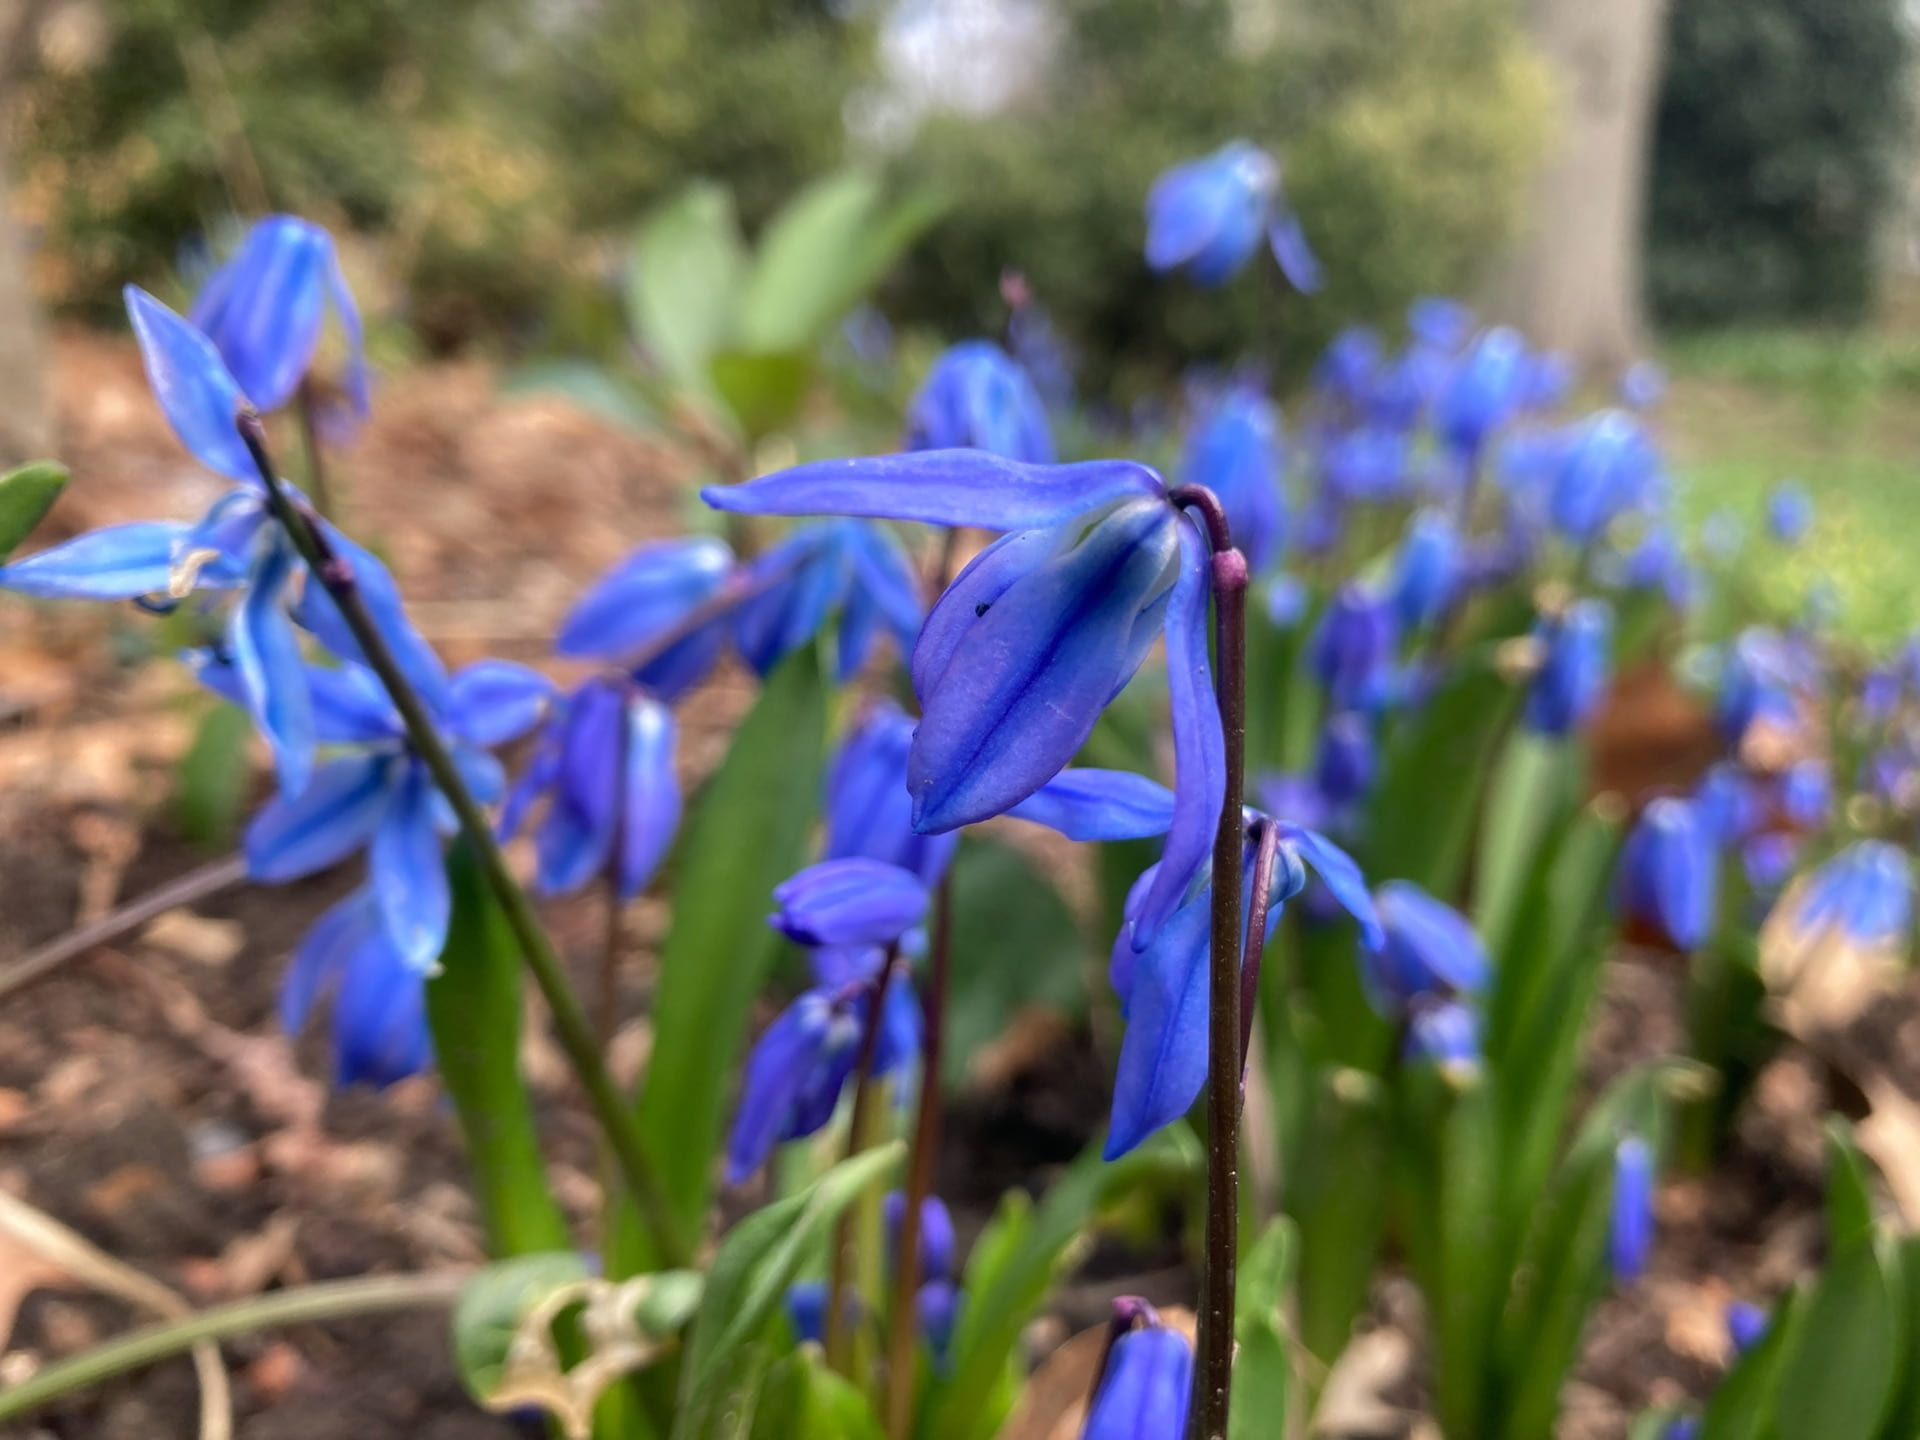 Minor blue bulbs, like these Scilla siberica, are in full bloom.